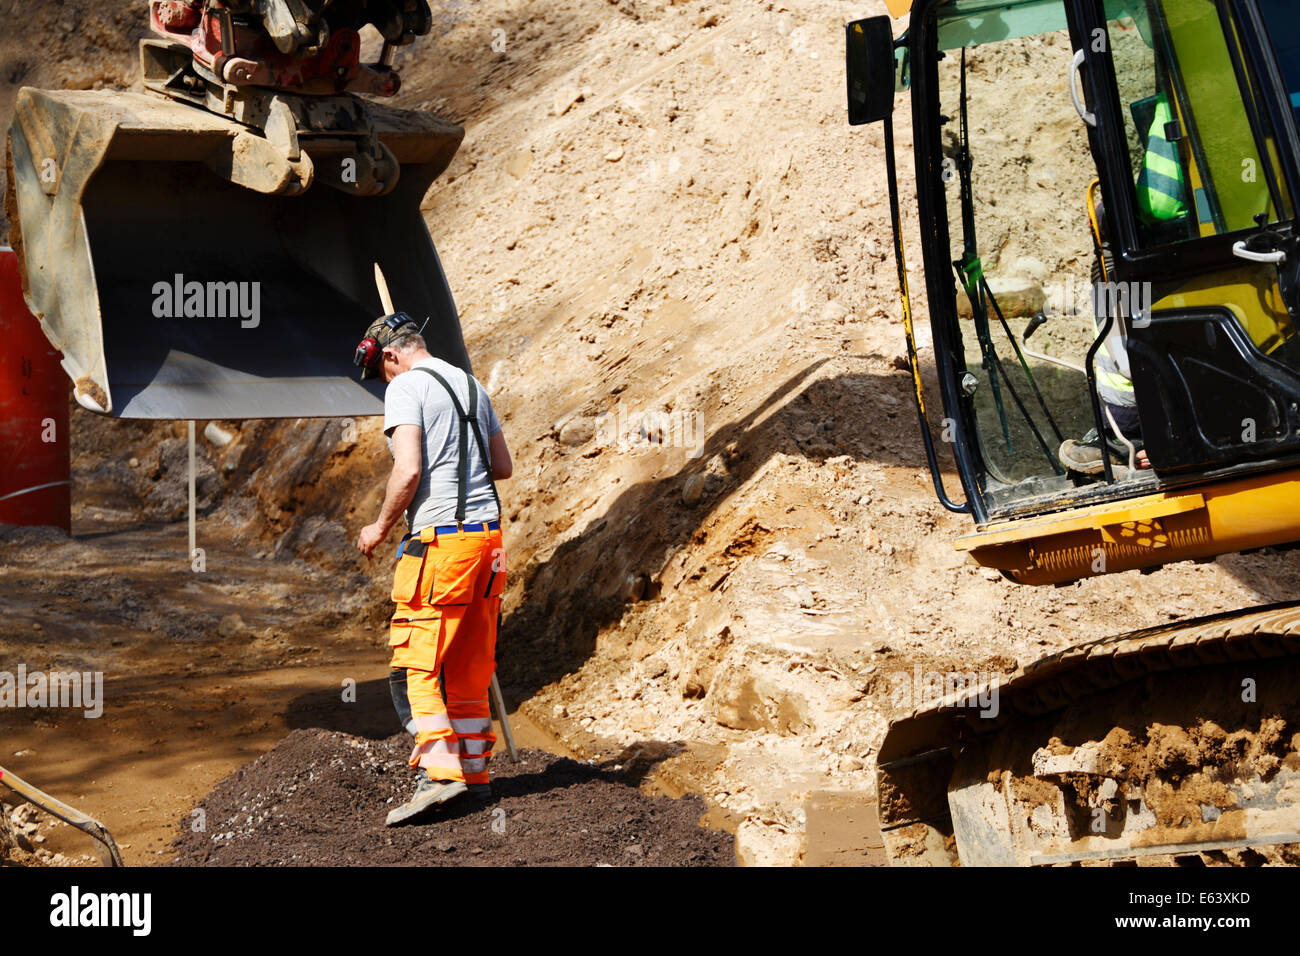 building-worker and bulldozer in excavating works, close-ups - Stock Image